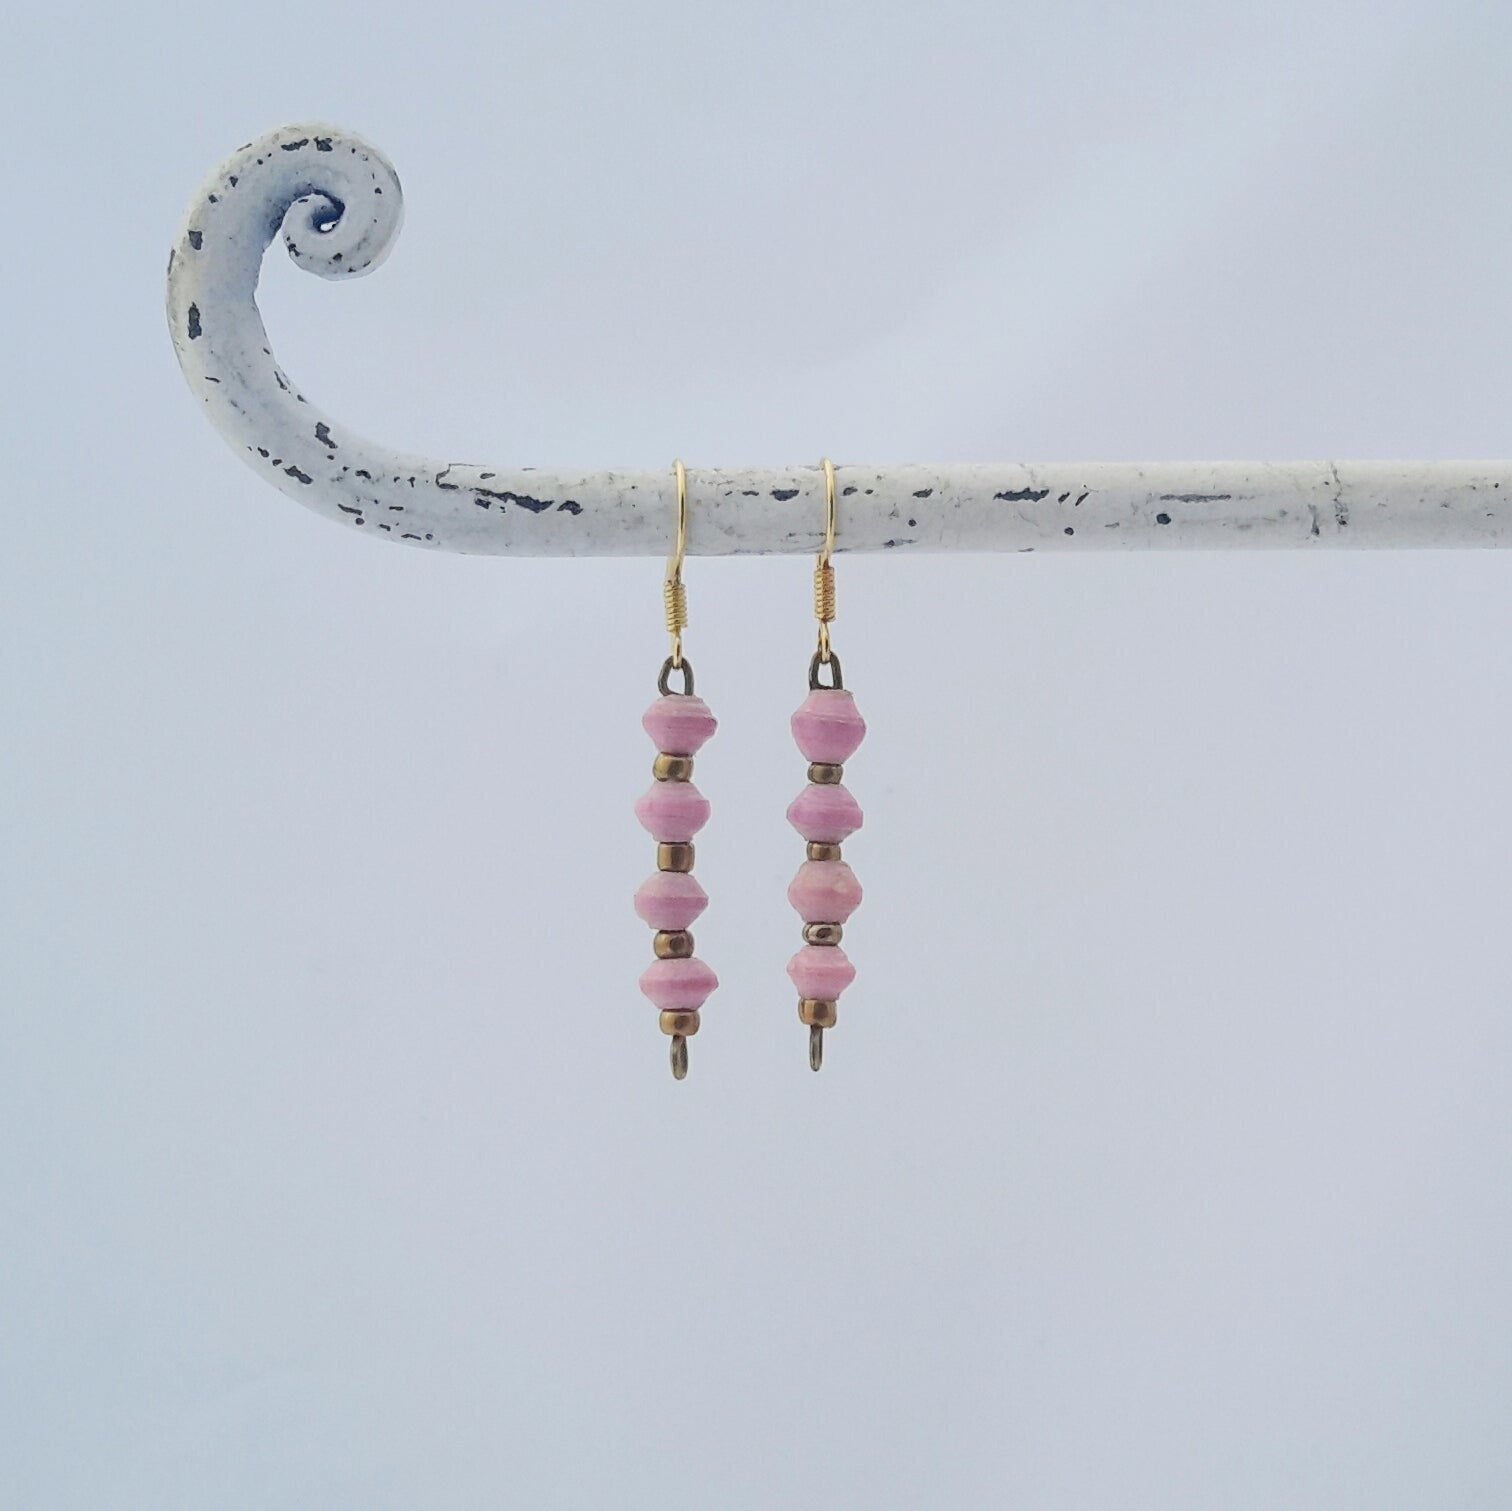 Amuka Necklace Pink + Earrings for FREE!